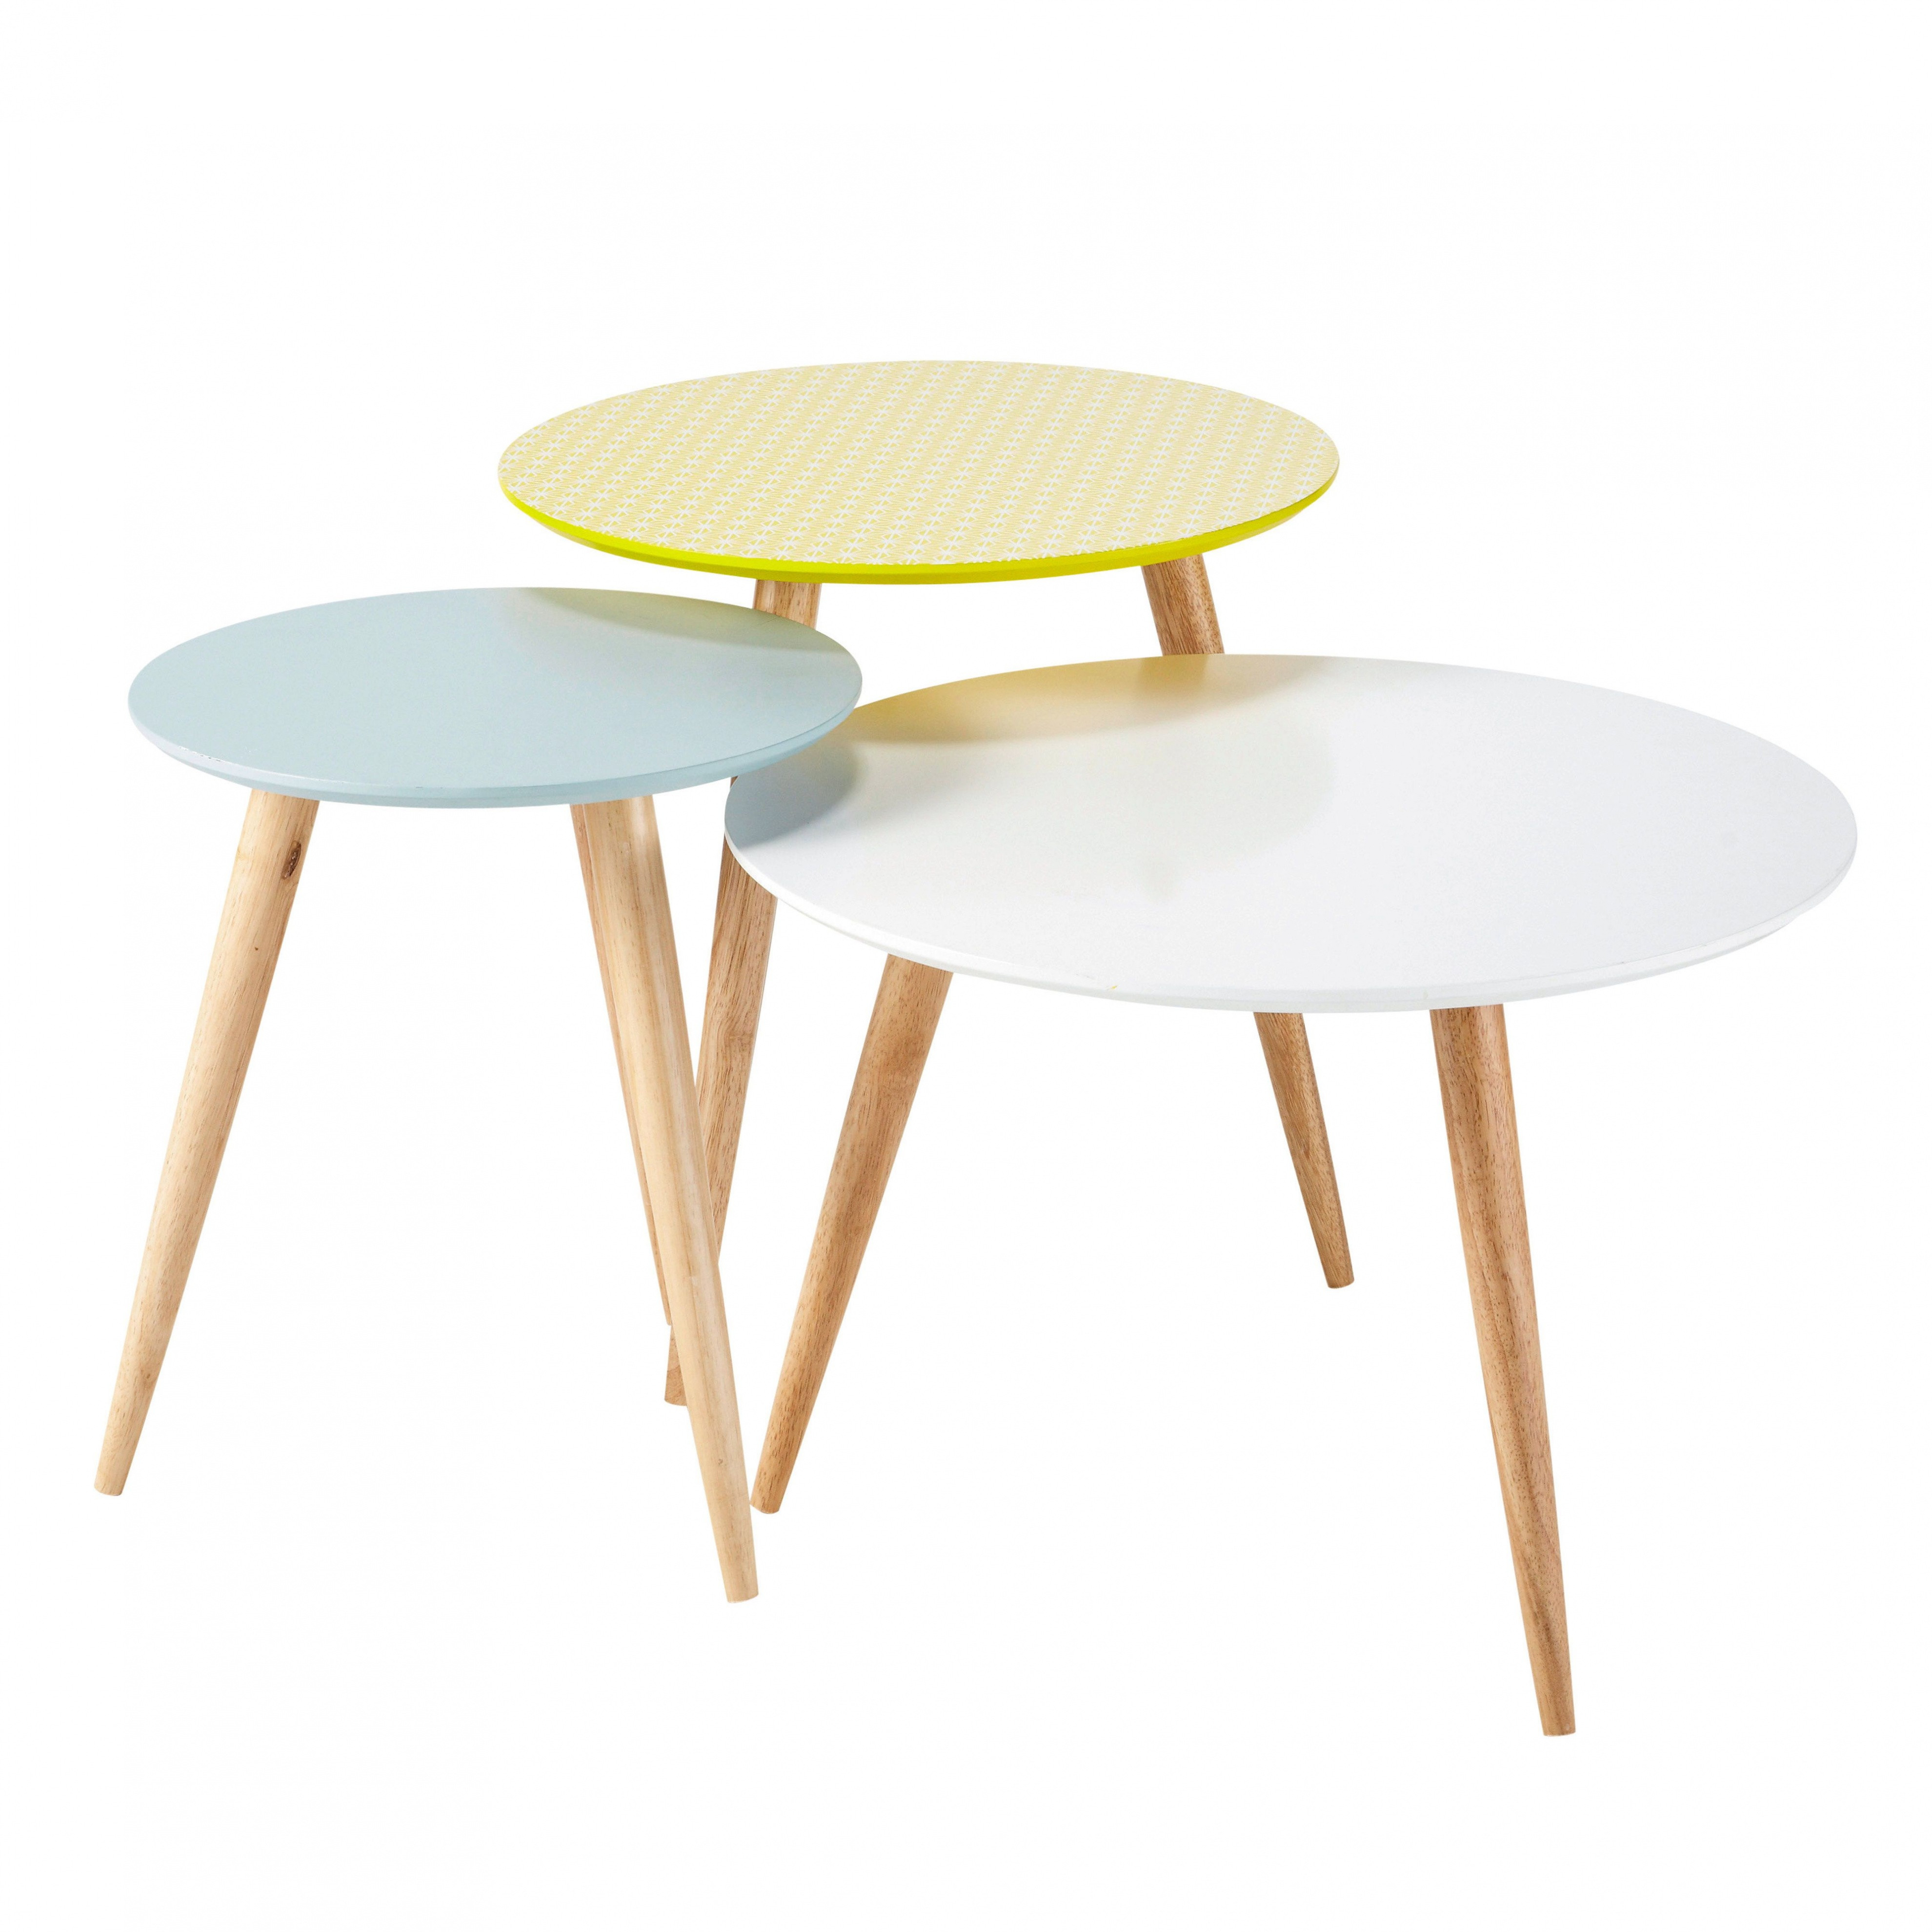 Table basse scandinave pas chere